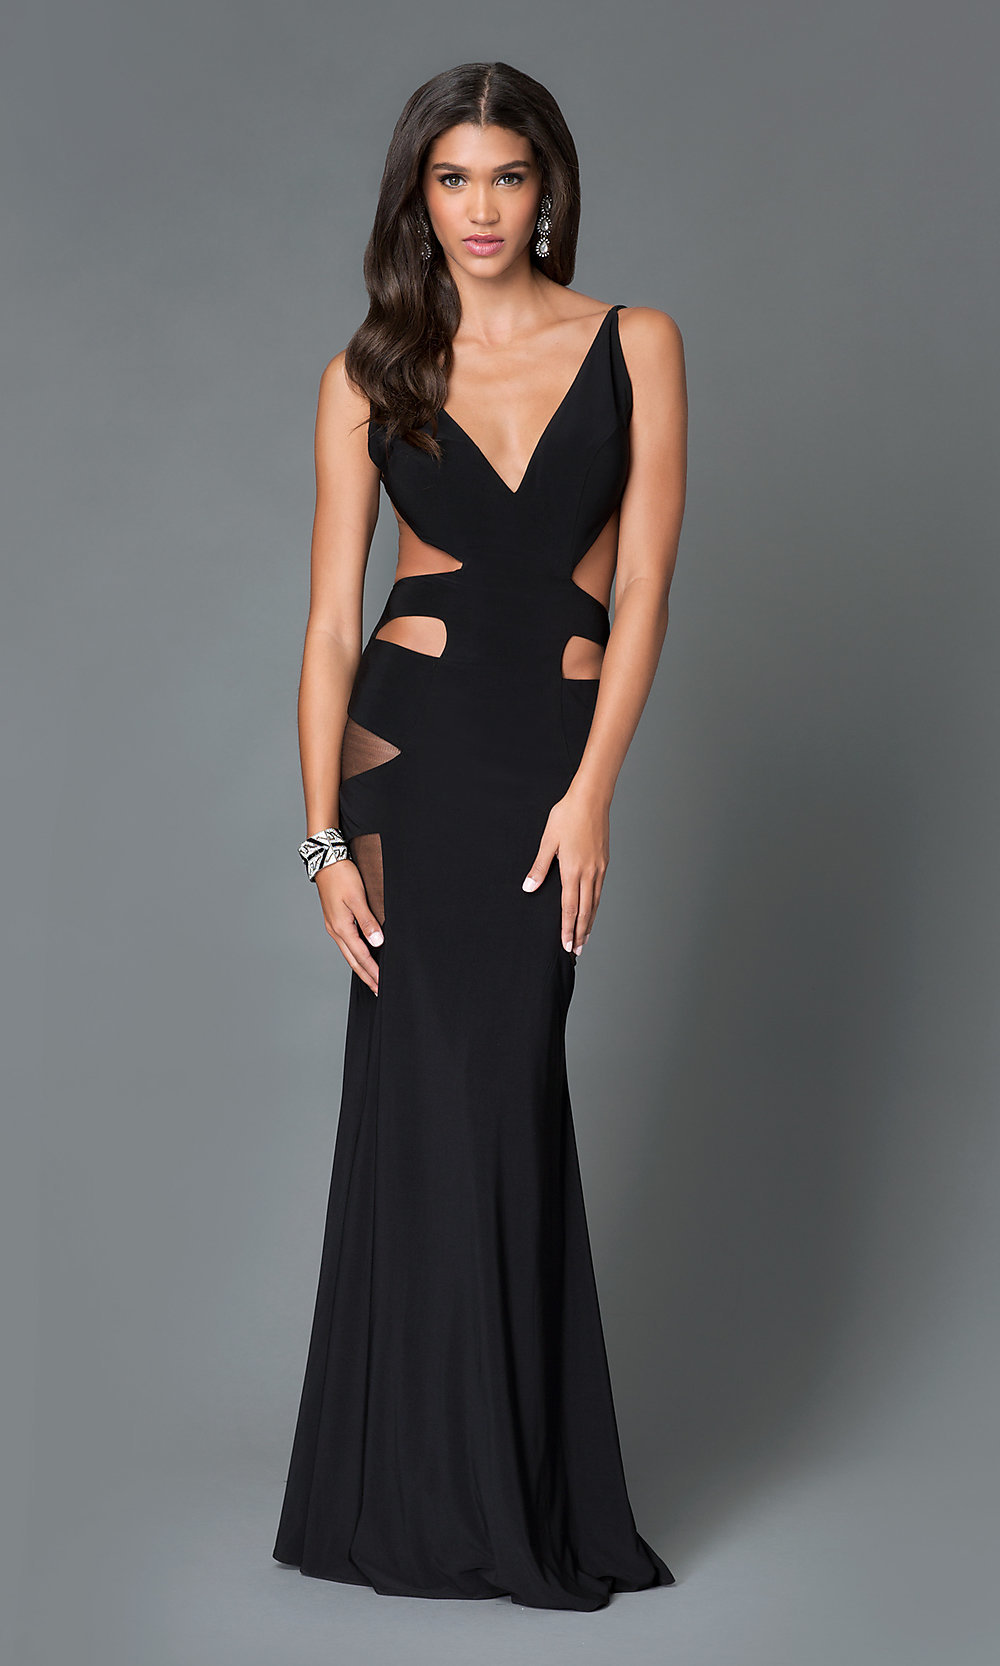 Long V Neck Open Back Prom Dress With Cut Outs From